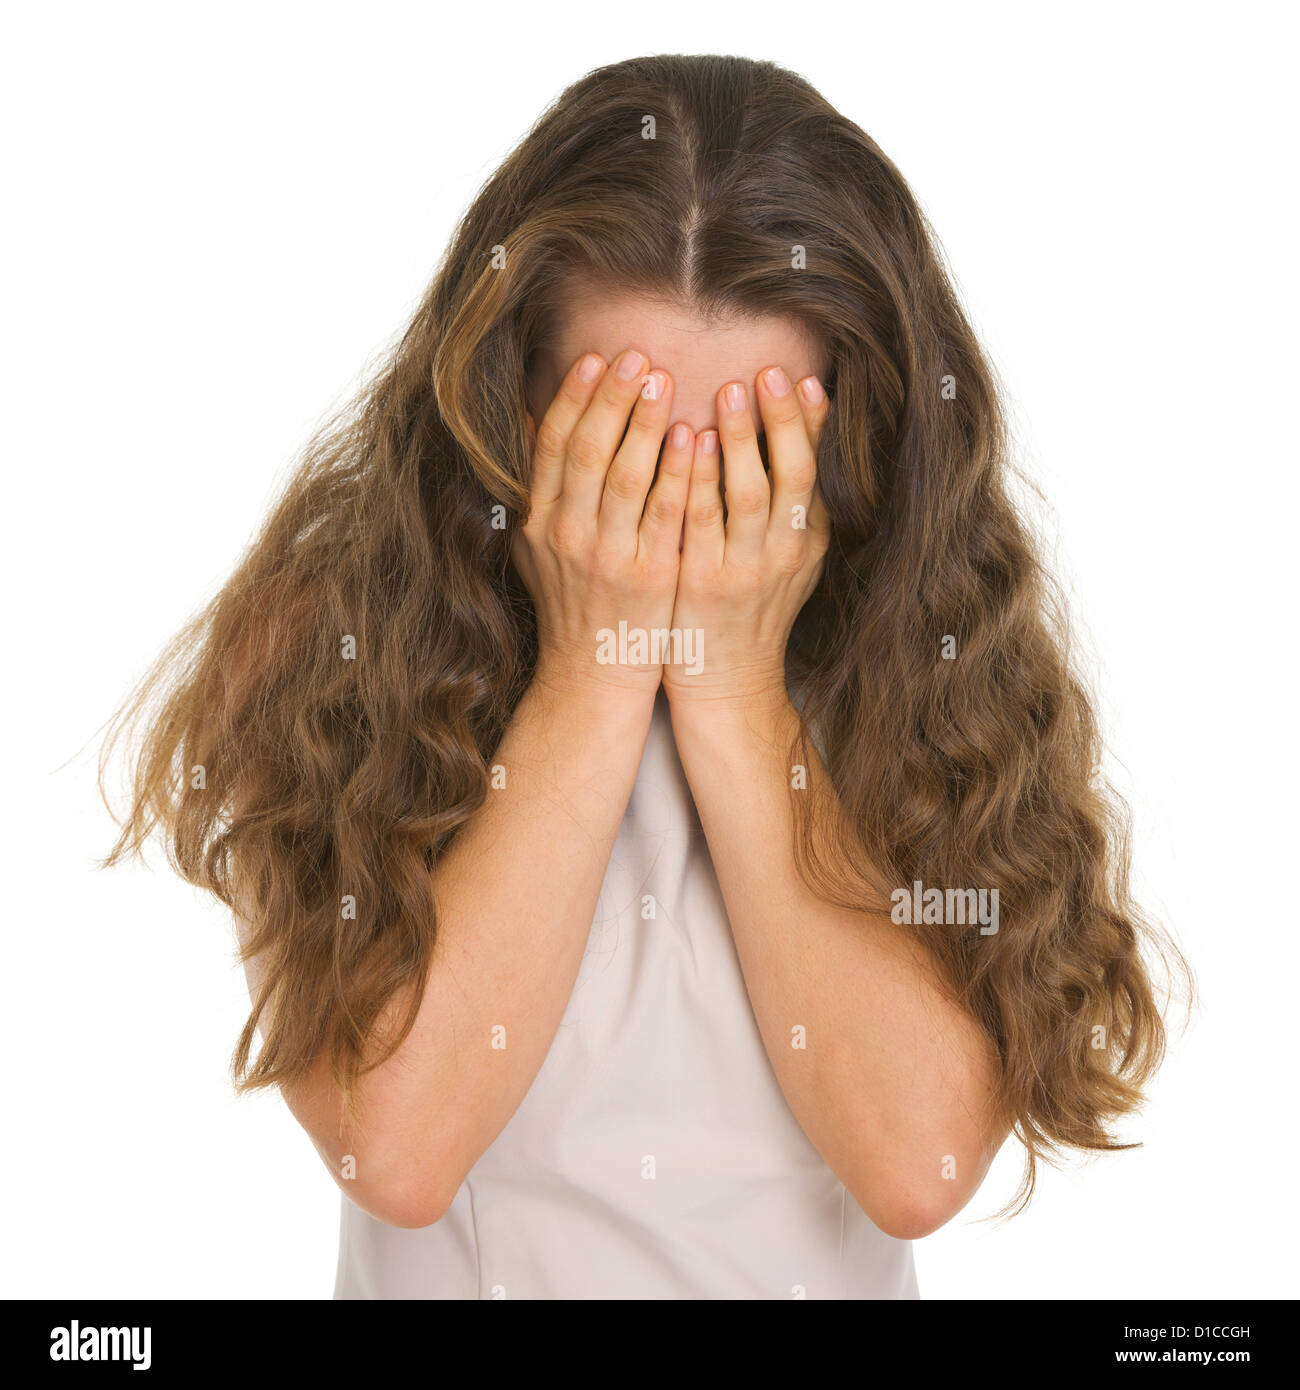 Portrait of woman crying - Stock Image